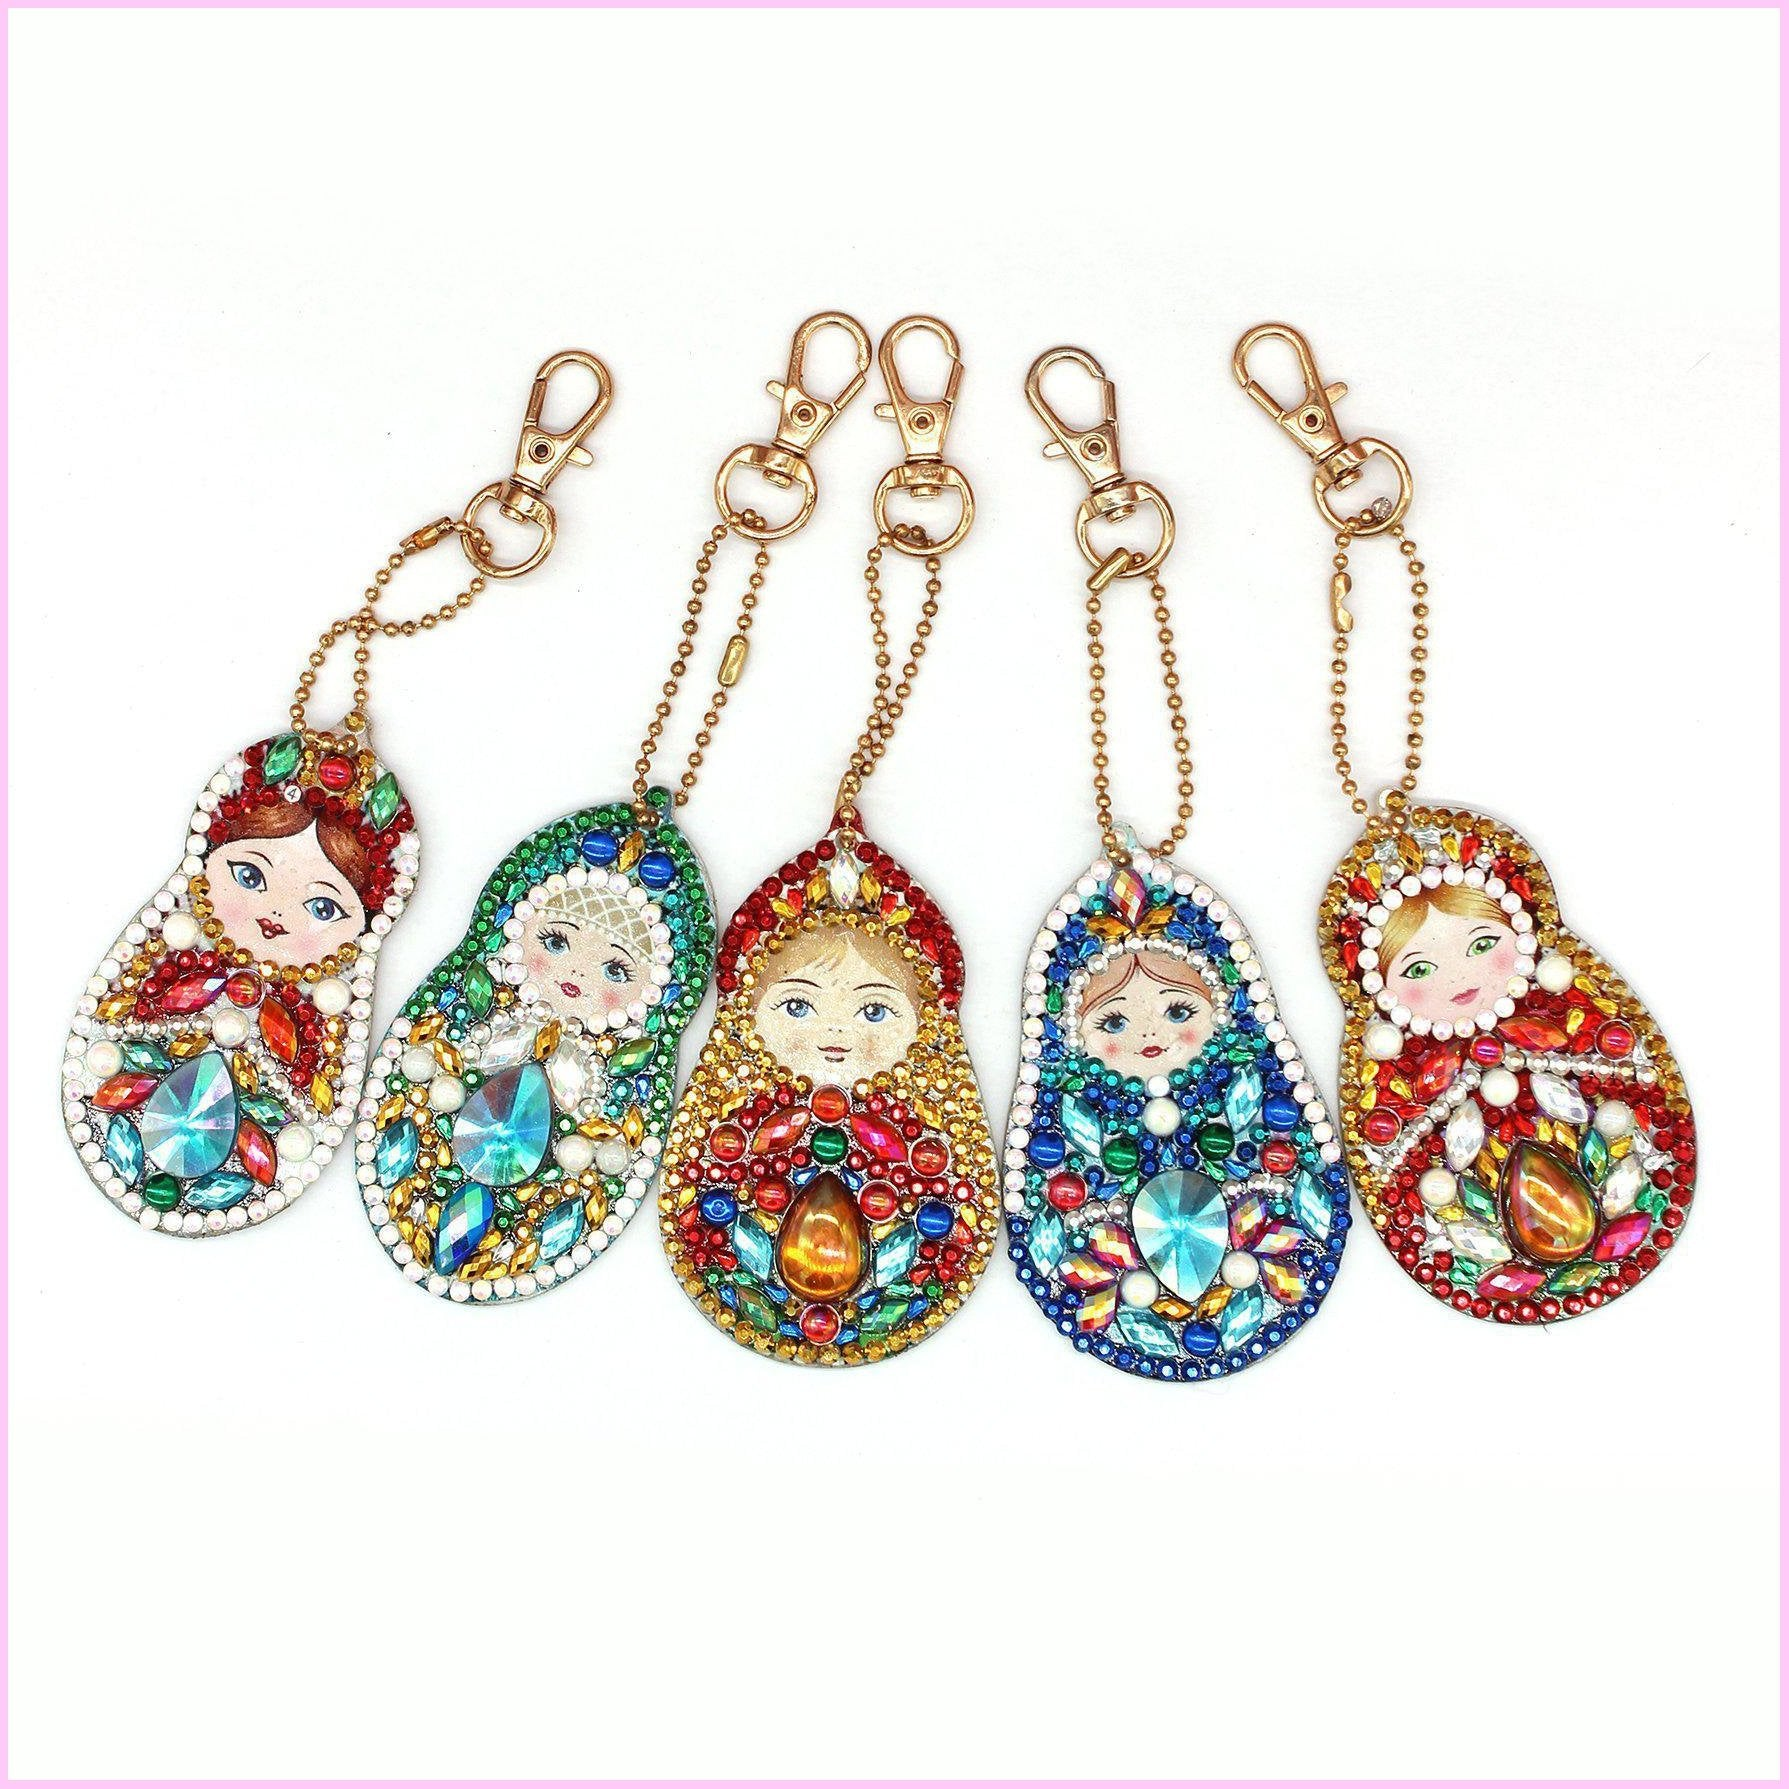 Matryoshka Dolls (Maternity) - Diamond Key Chains-Key chain-Heartful Diamonds